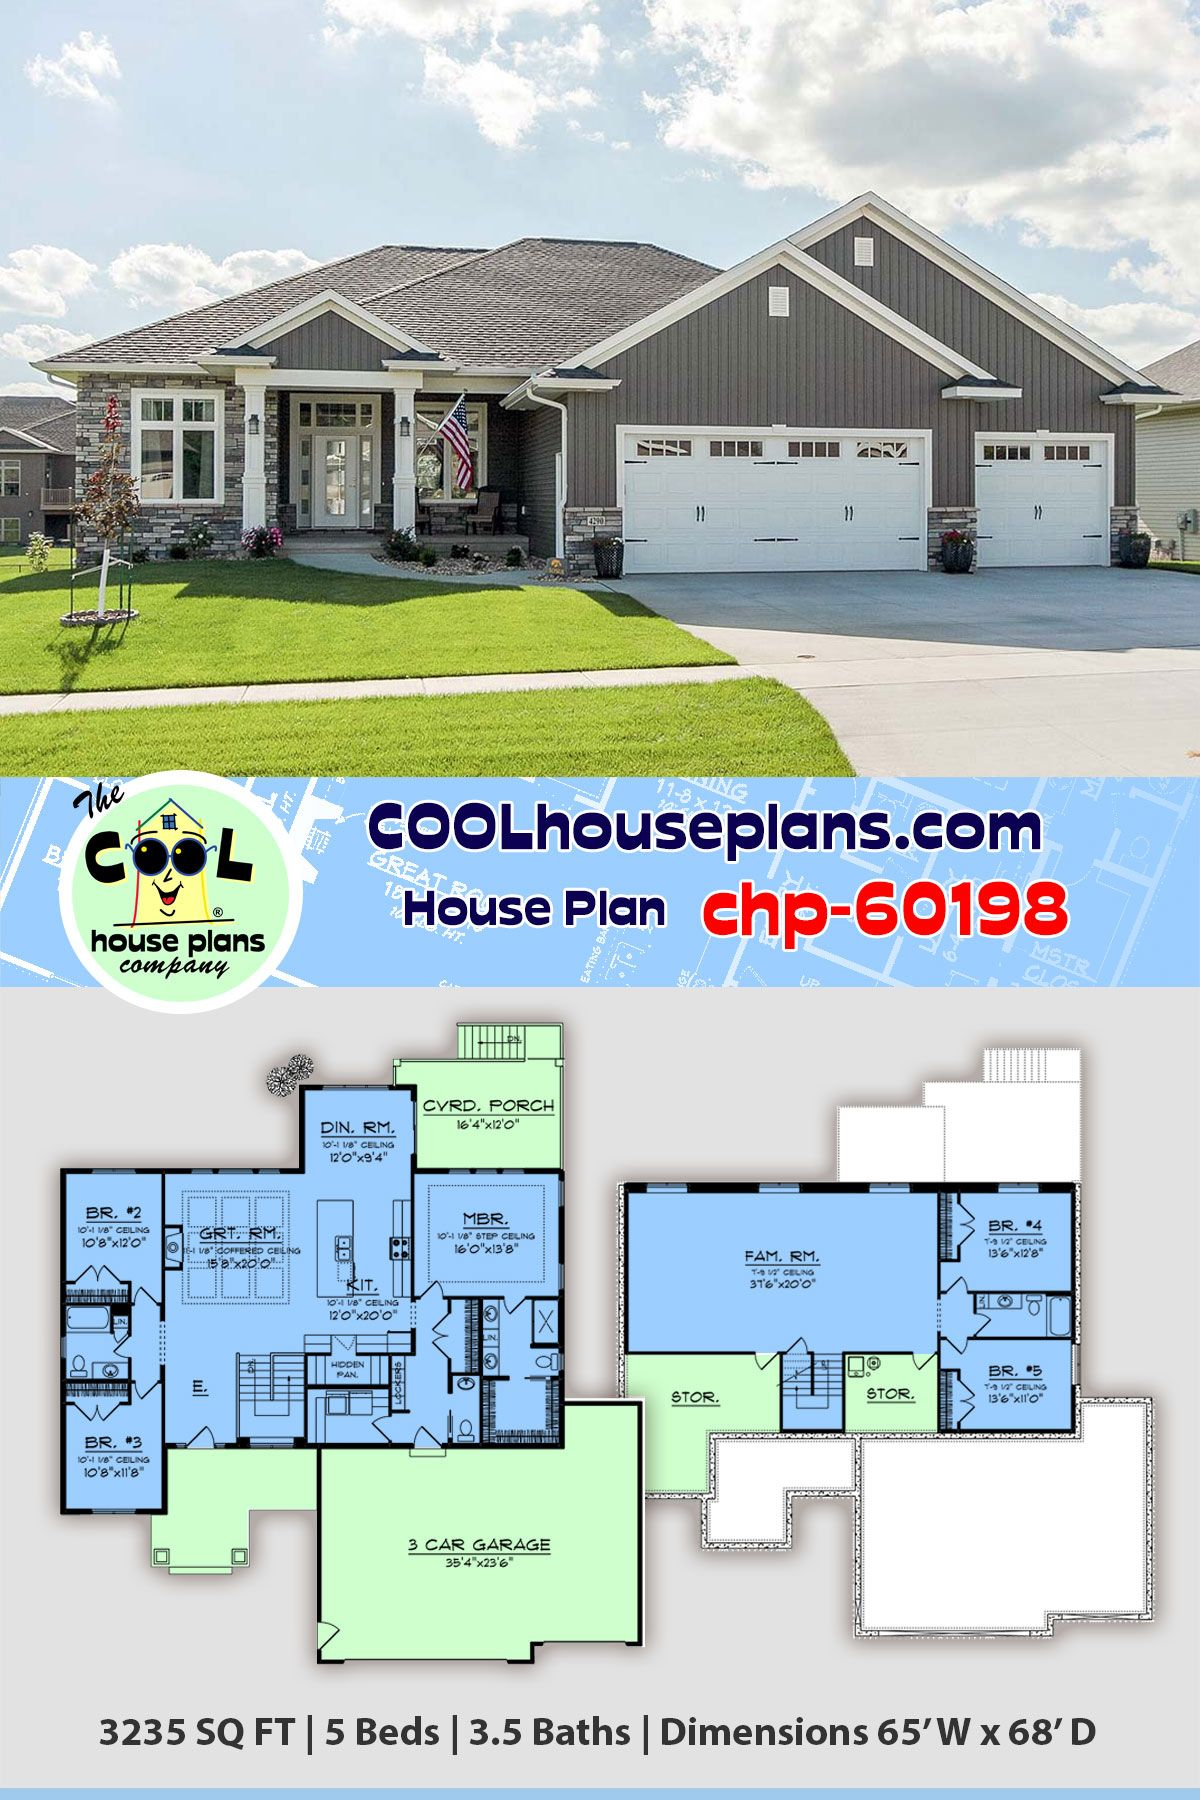 Craftsman Style House Floor Plan Chp 60198 Has 3235 Sq Ft 5 Beds 4 Baths And A 3 Bay Craftsman House Plans Craftsman Style House Plans Craftsman Style Homes